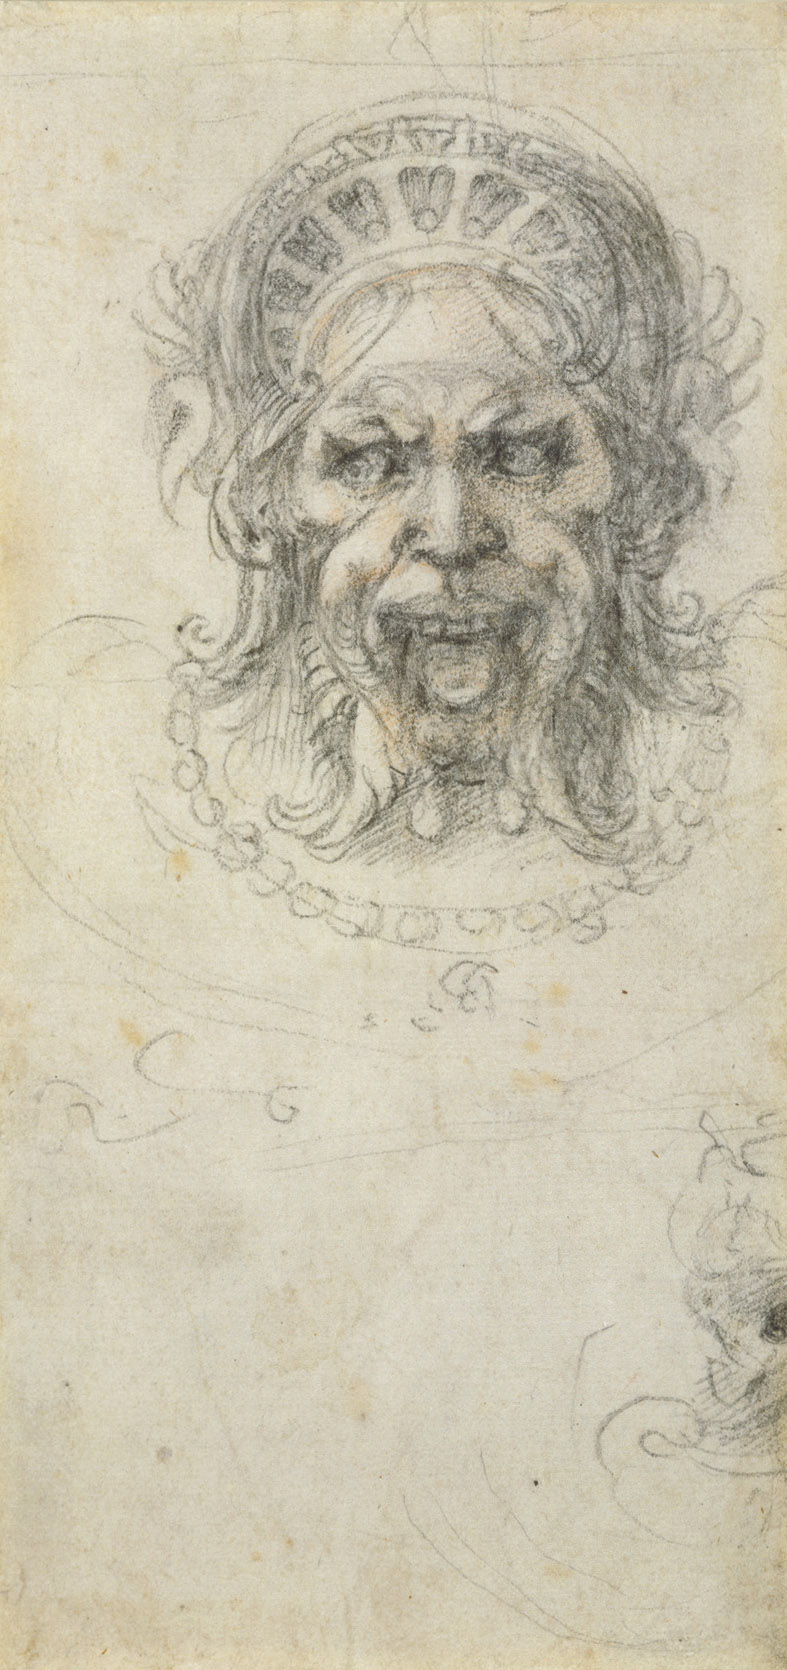 Michelangelo Buonarroti -Drawing -Grotesque head R.jpg